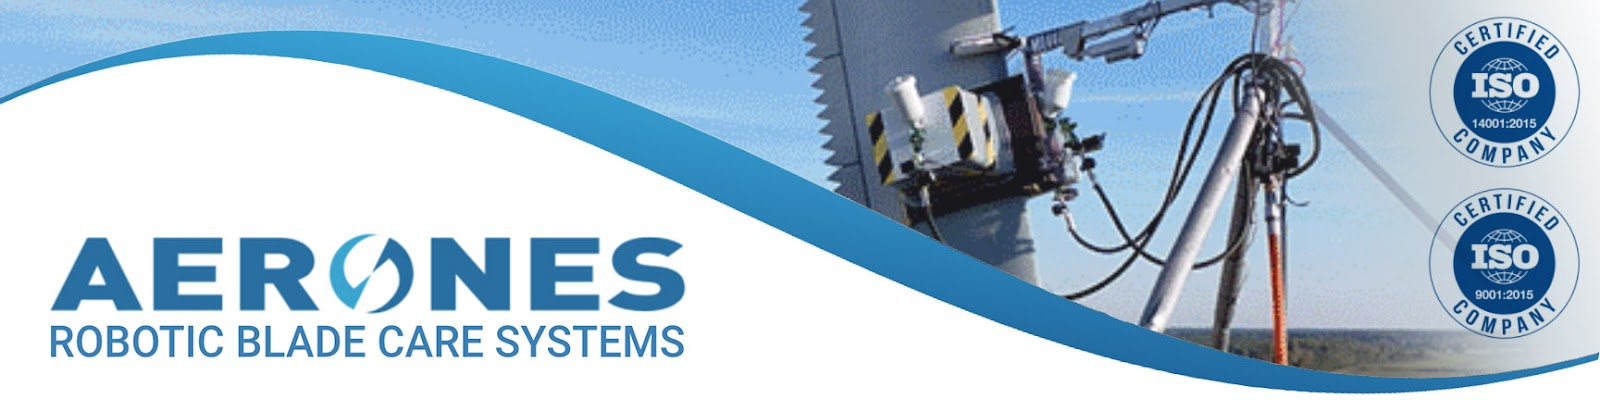 Aerones robotic blade care systems is ISO 9001 and iso 14001 certified